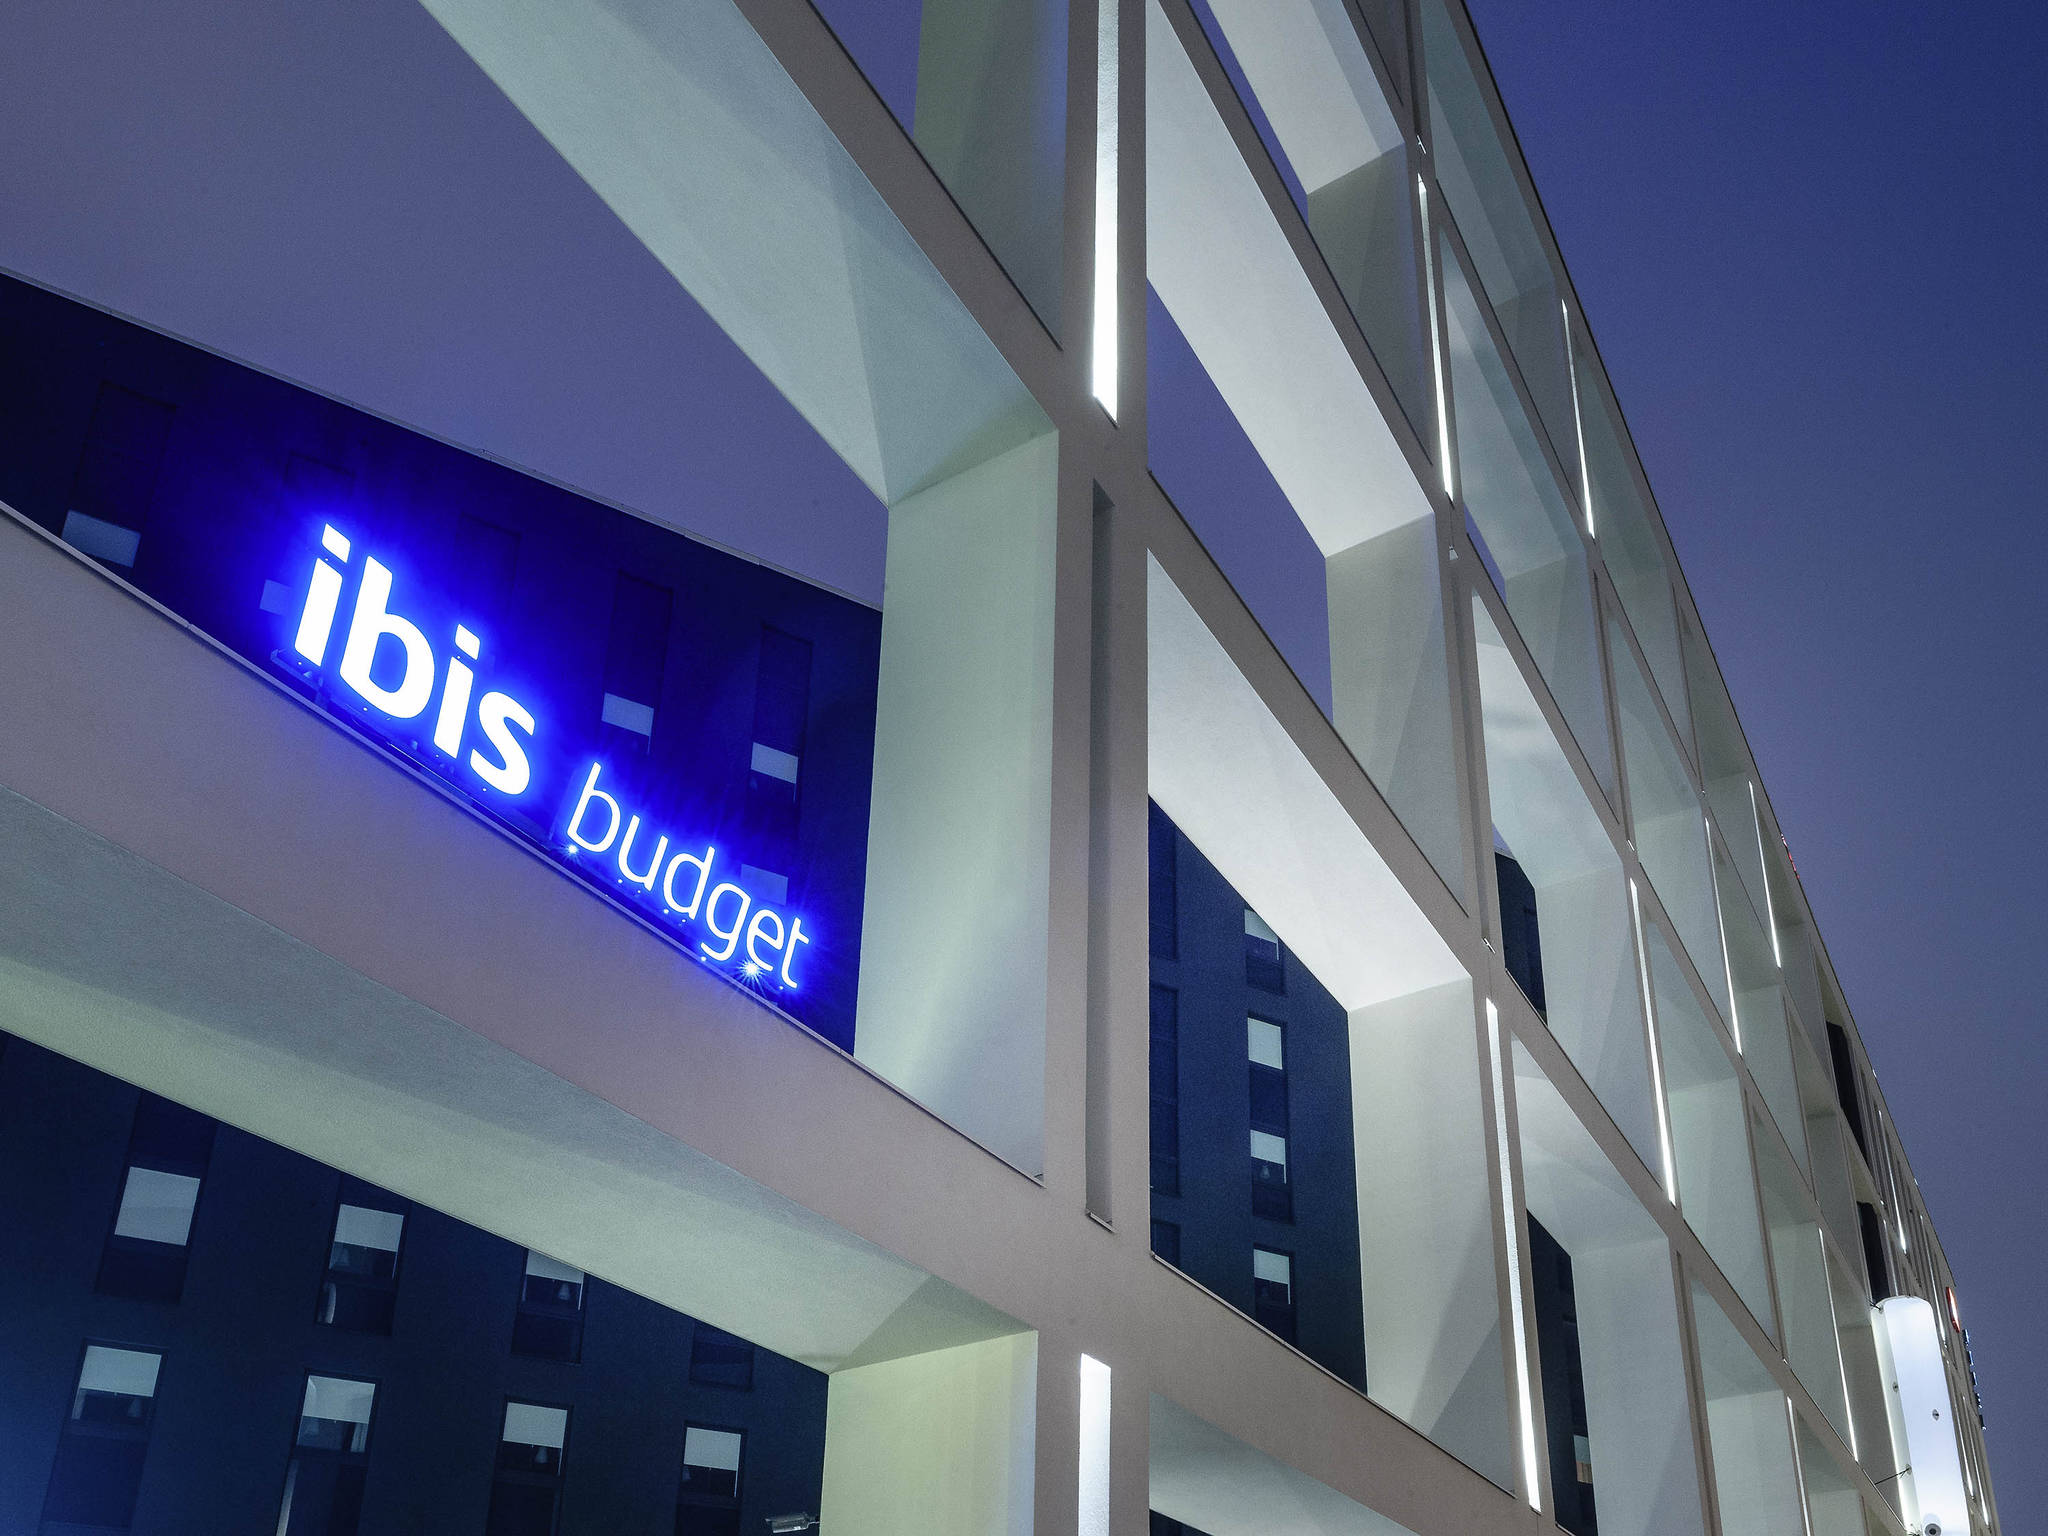 hotel ibis budget hamburg city book now opening. Black Bedroom Furniture Sets. Home Design Ideas